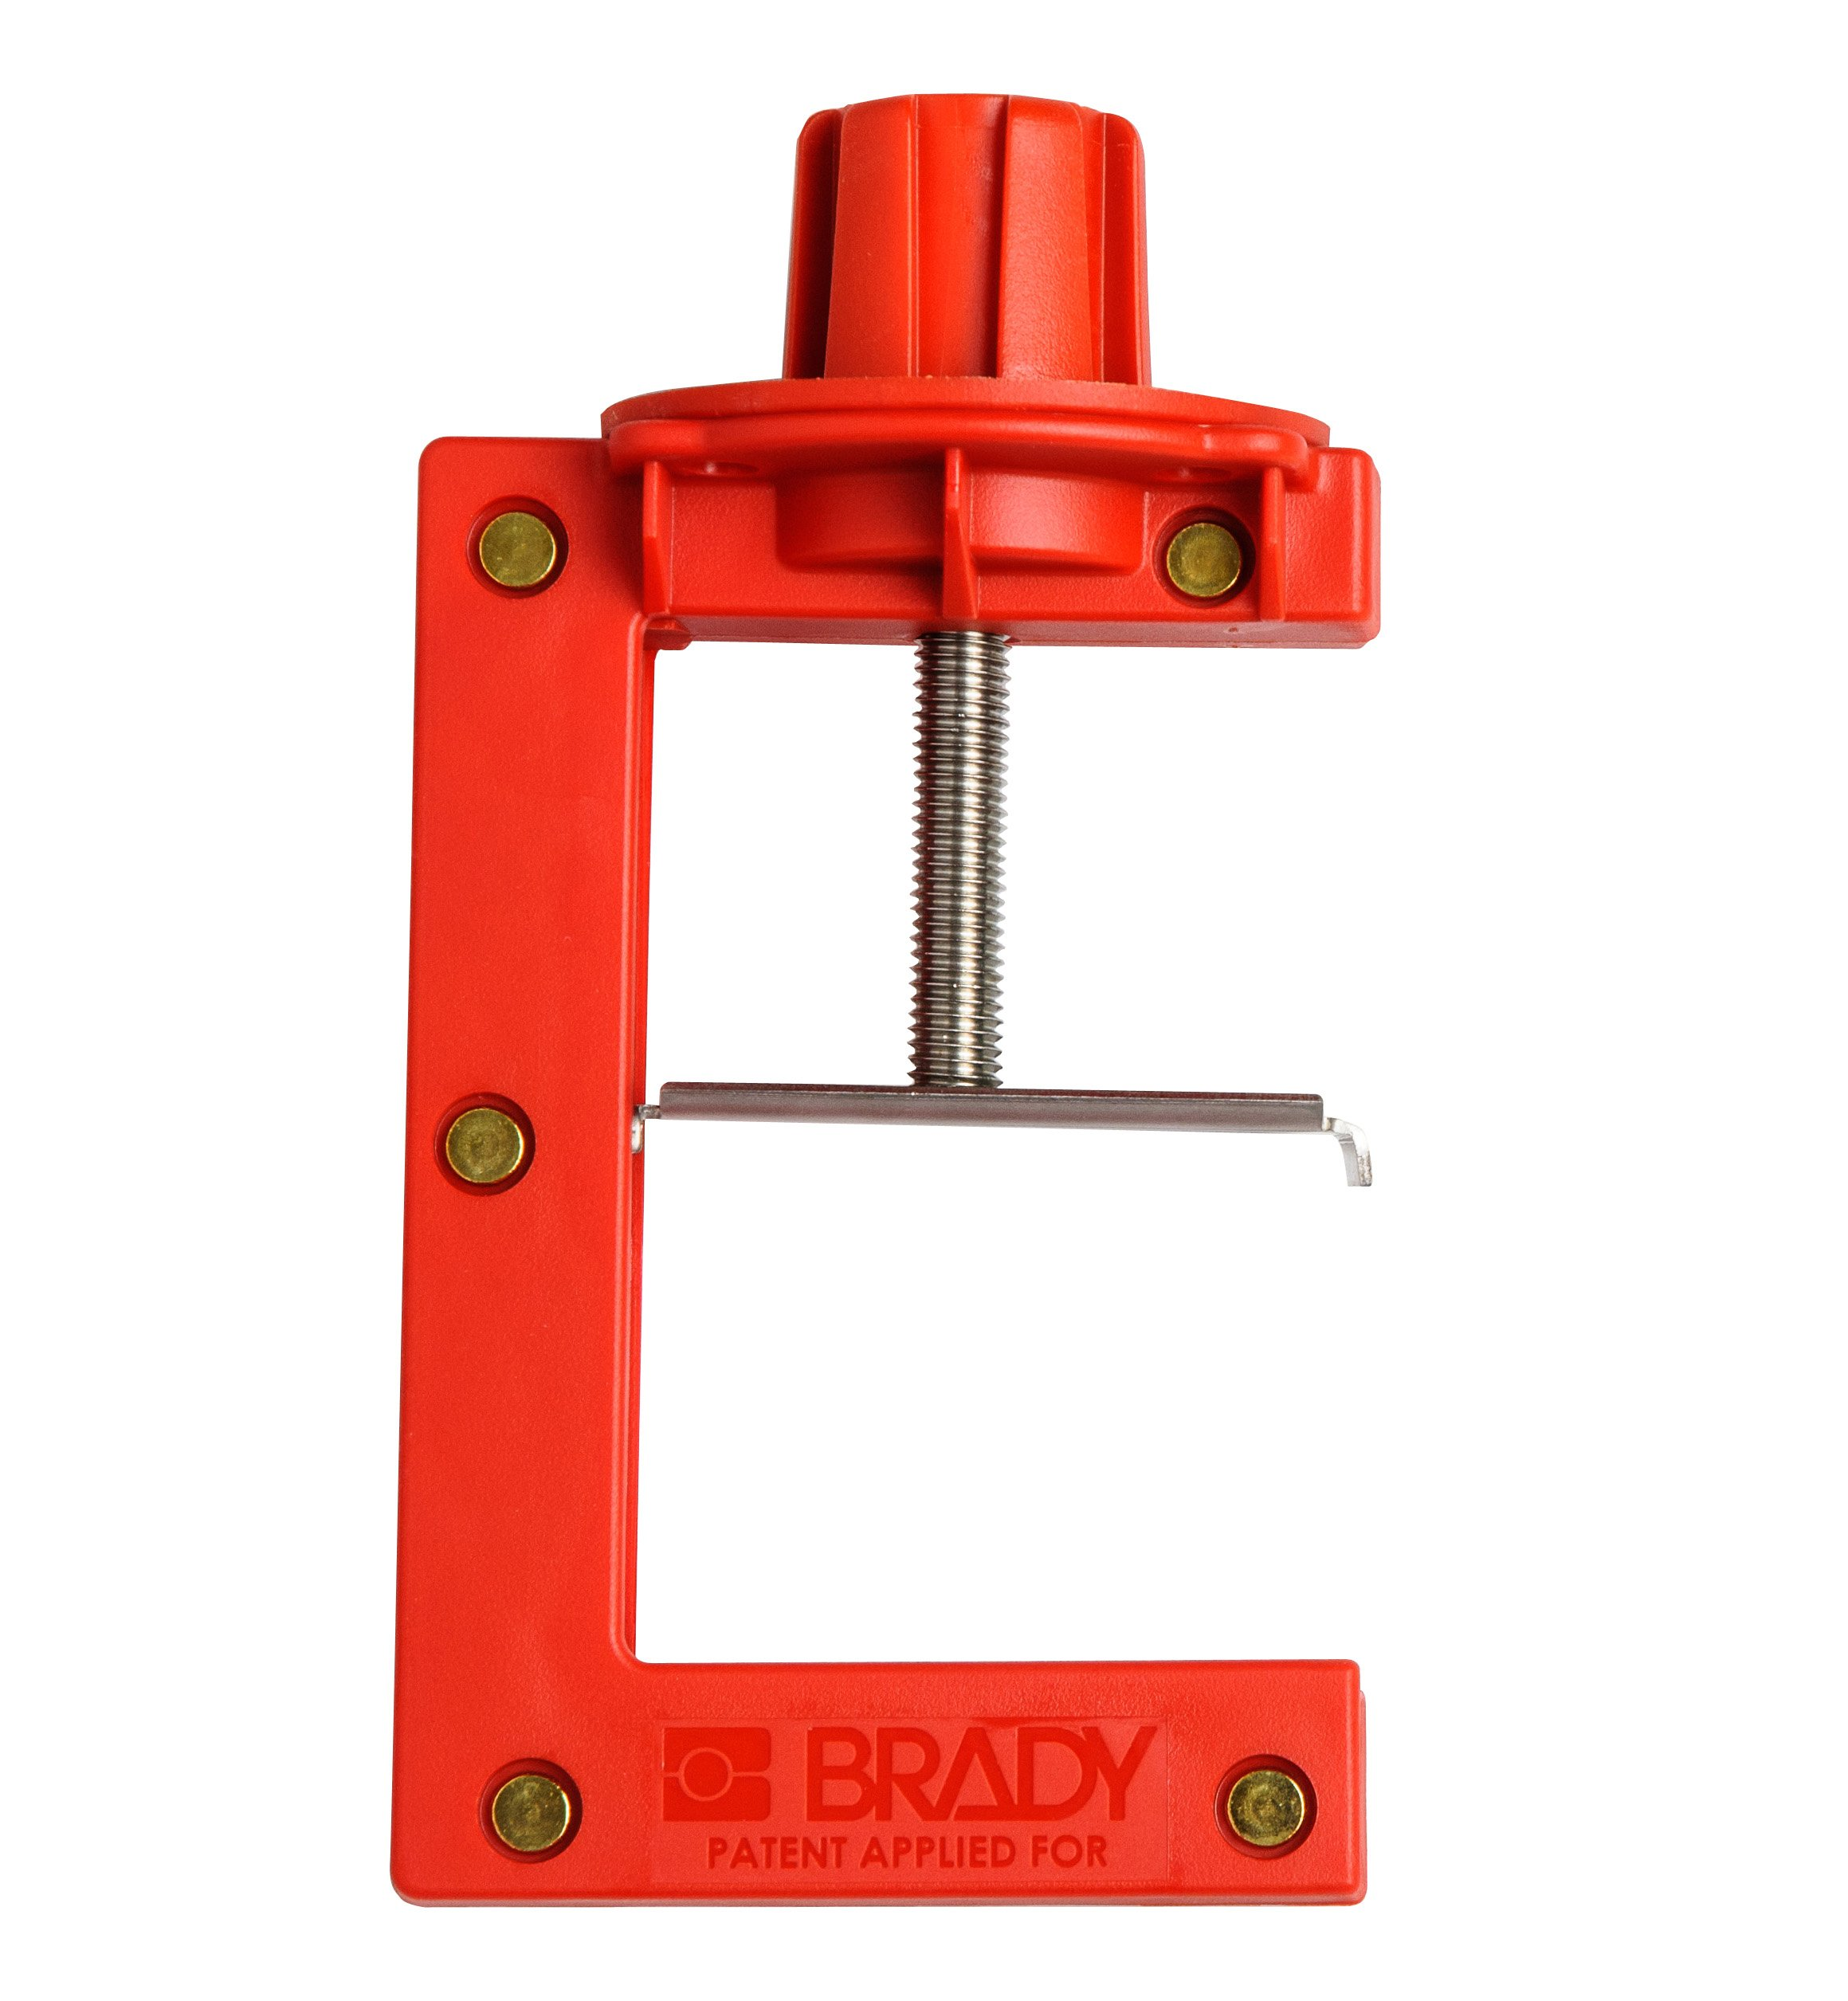 Brady 121505 Large Red, Butterfly Valve Lockout - Large (1 Each)